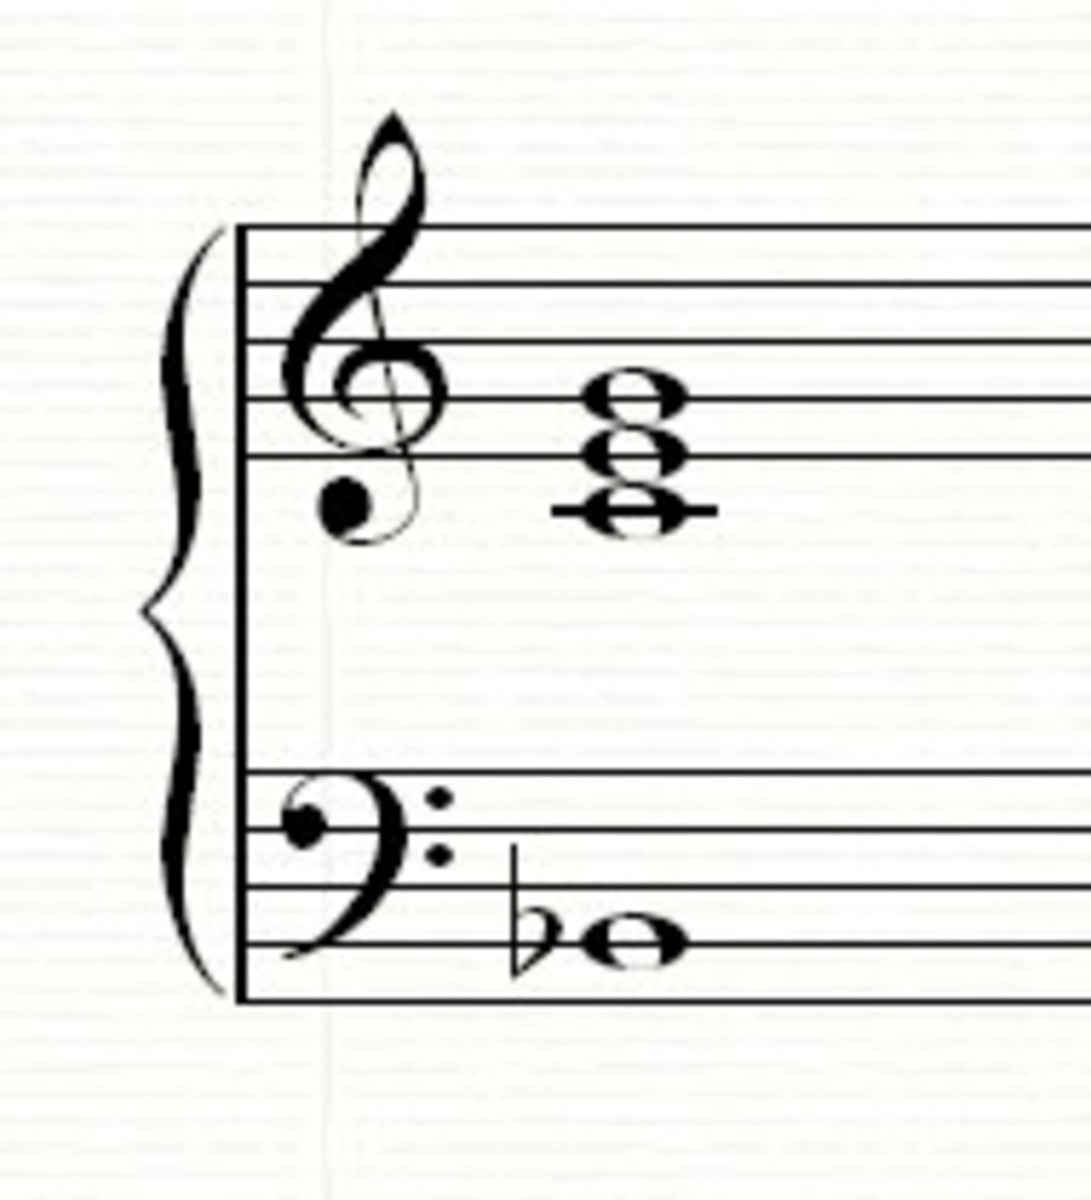 C7 chord in 3rd inversion (B flat is the lowest note)